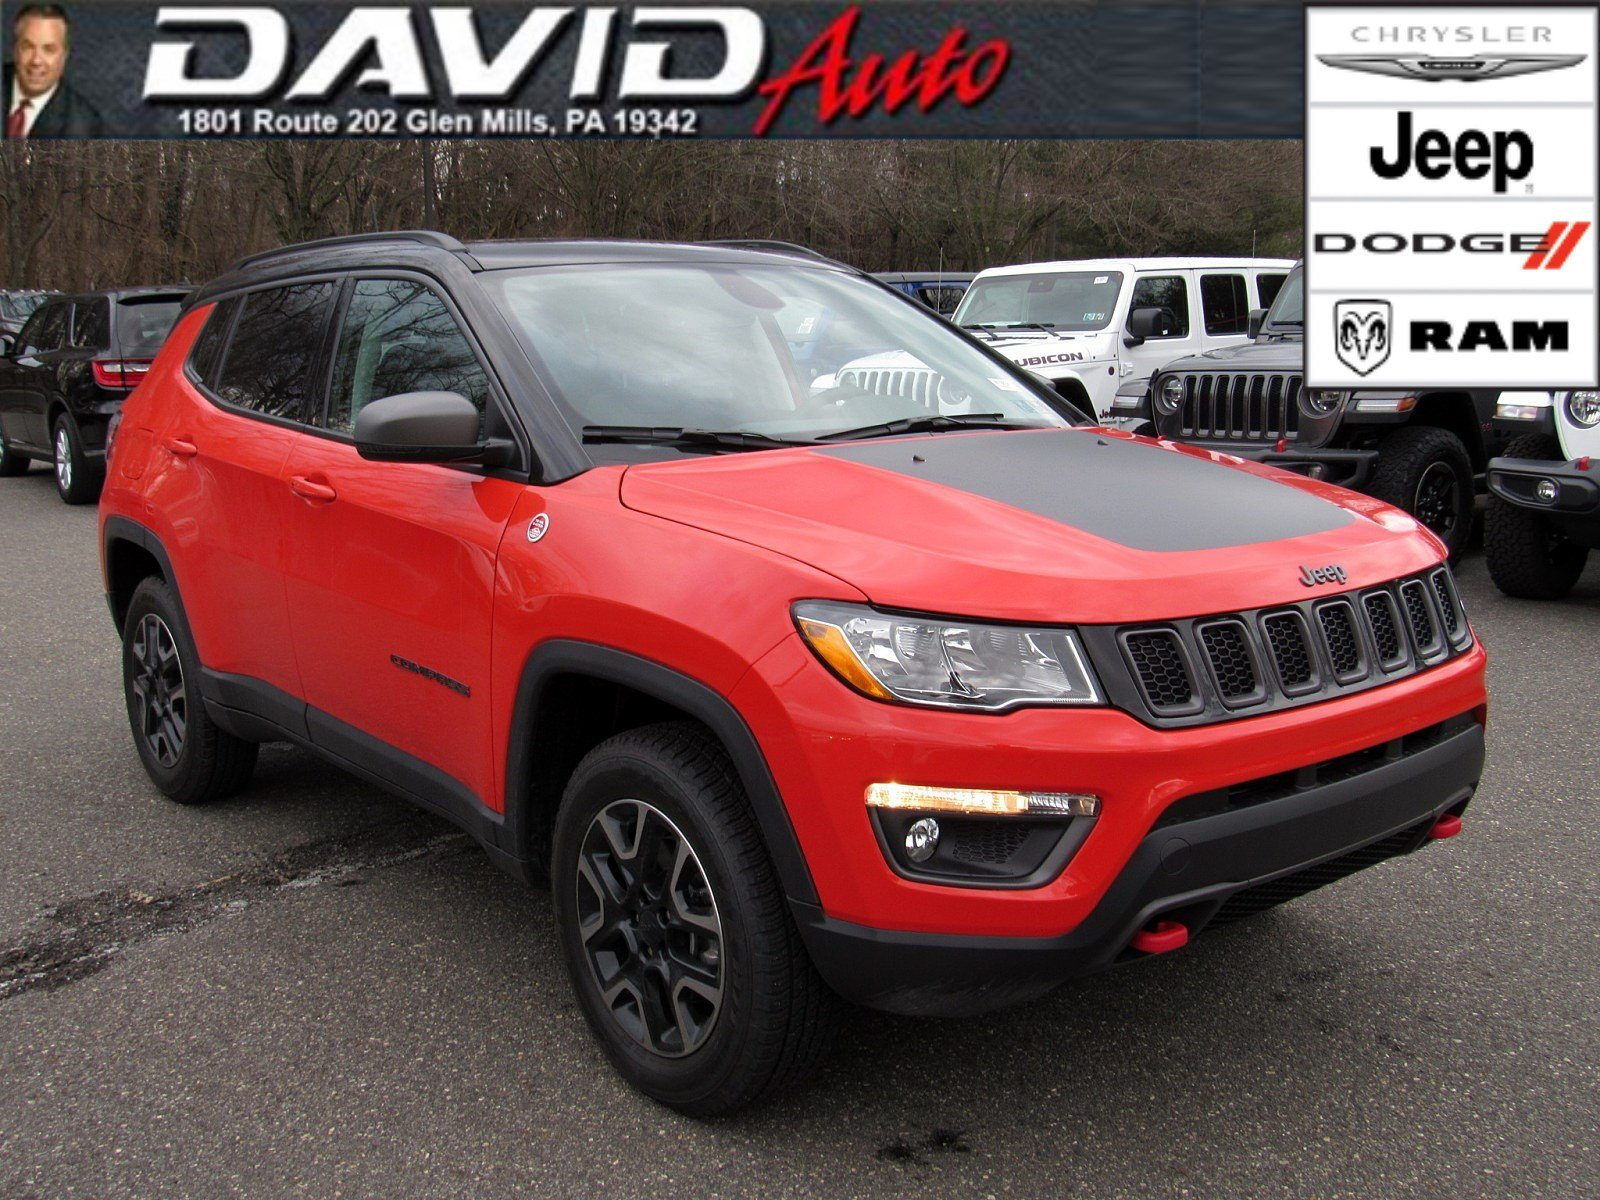 2019 Jeep Compass Trailhawk: Design, Mechanics, Price >> New 2019 Jeep Compass Trailhawk 4x4